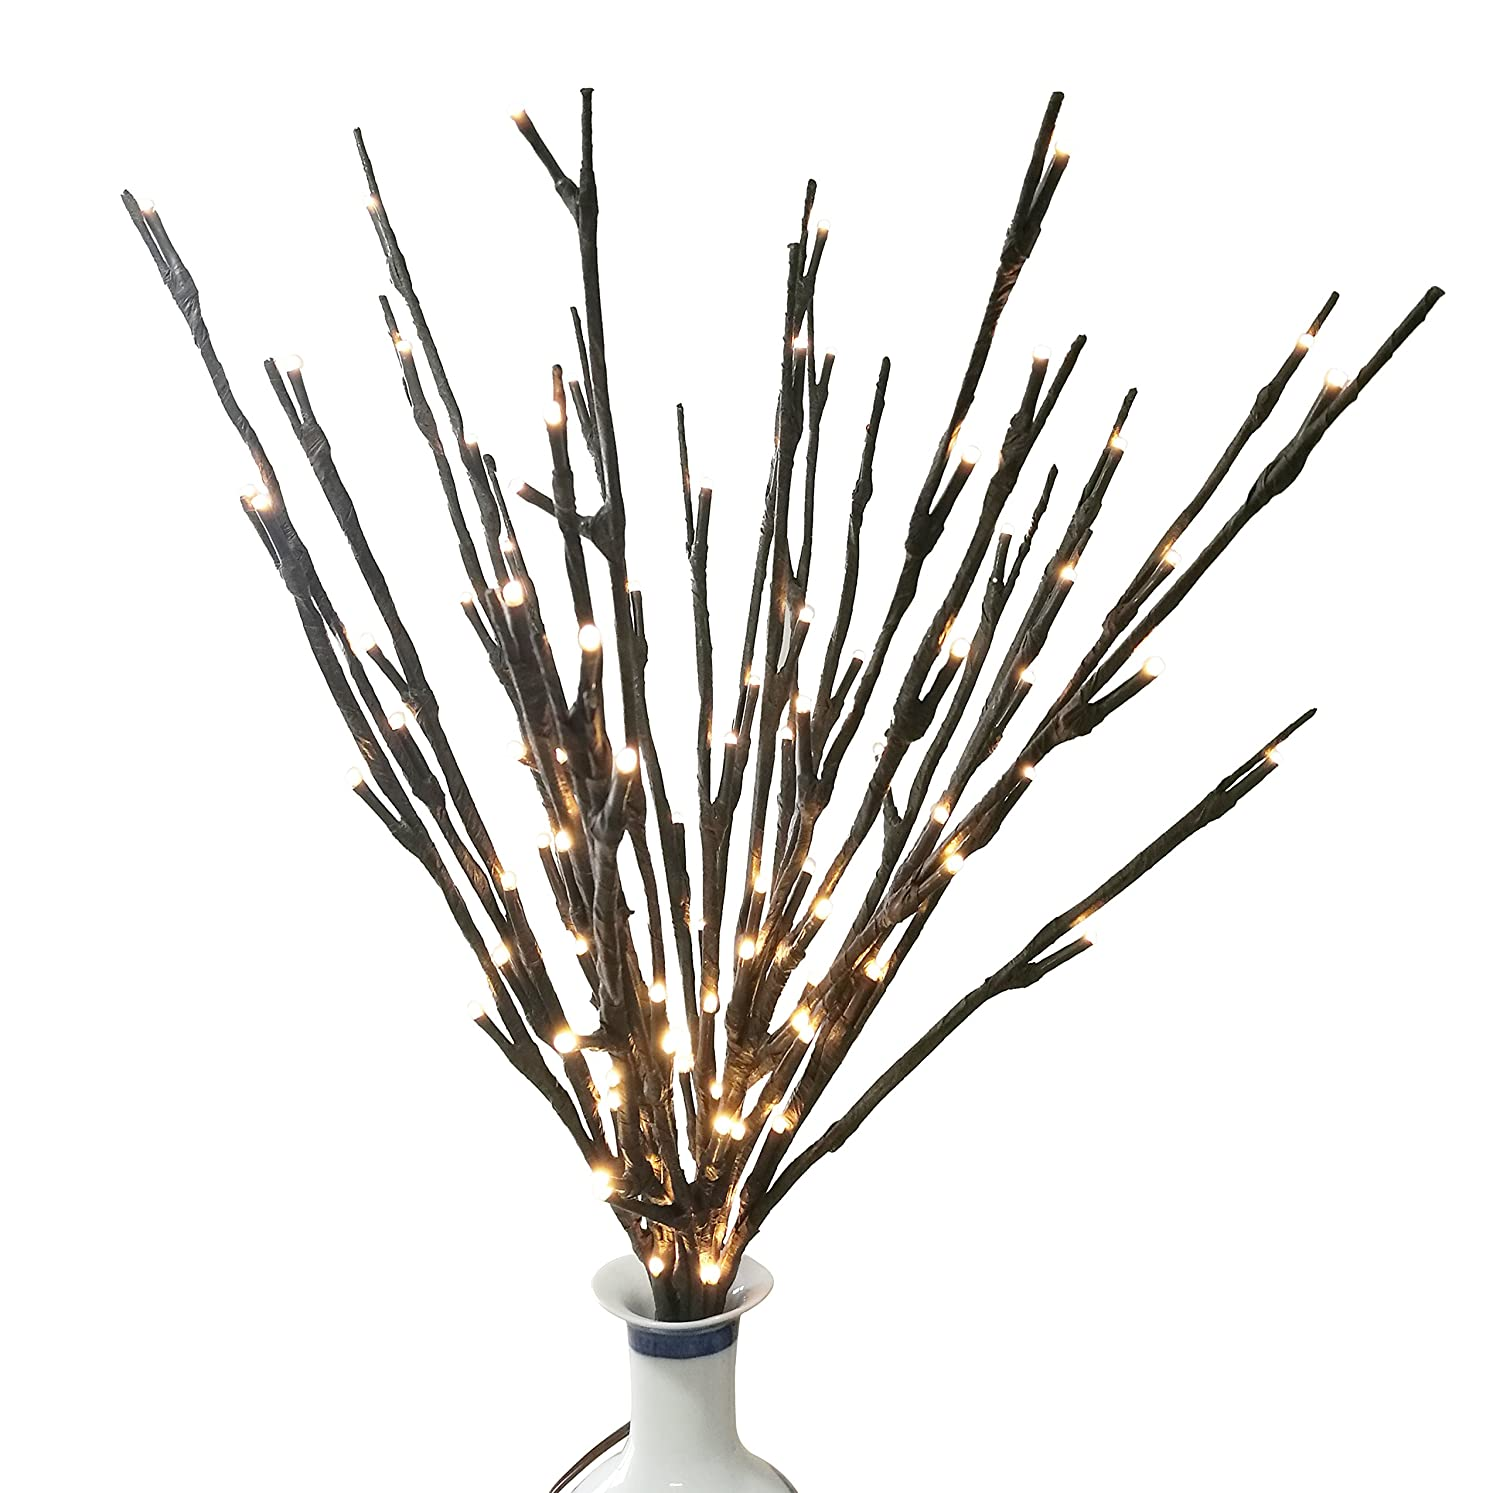 BABALI Lighted Twig Branches 20 Inches 100 Led Battery and Electric/Corded  Dual Power Decorative Branches Artificial Willow White Lighting Branch ...